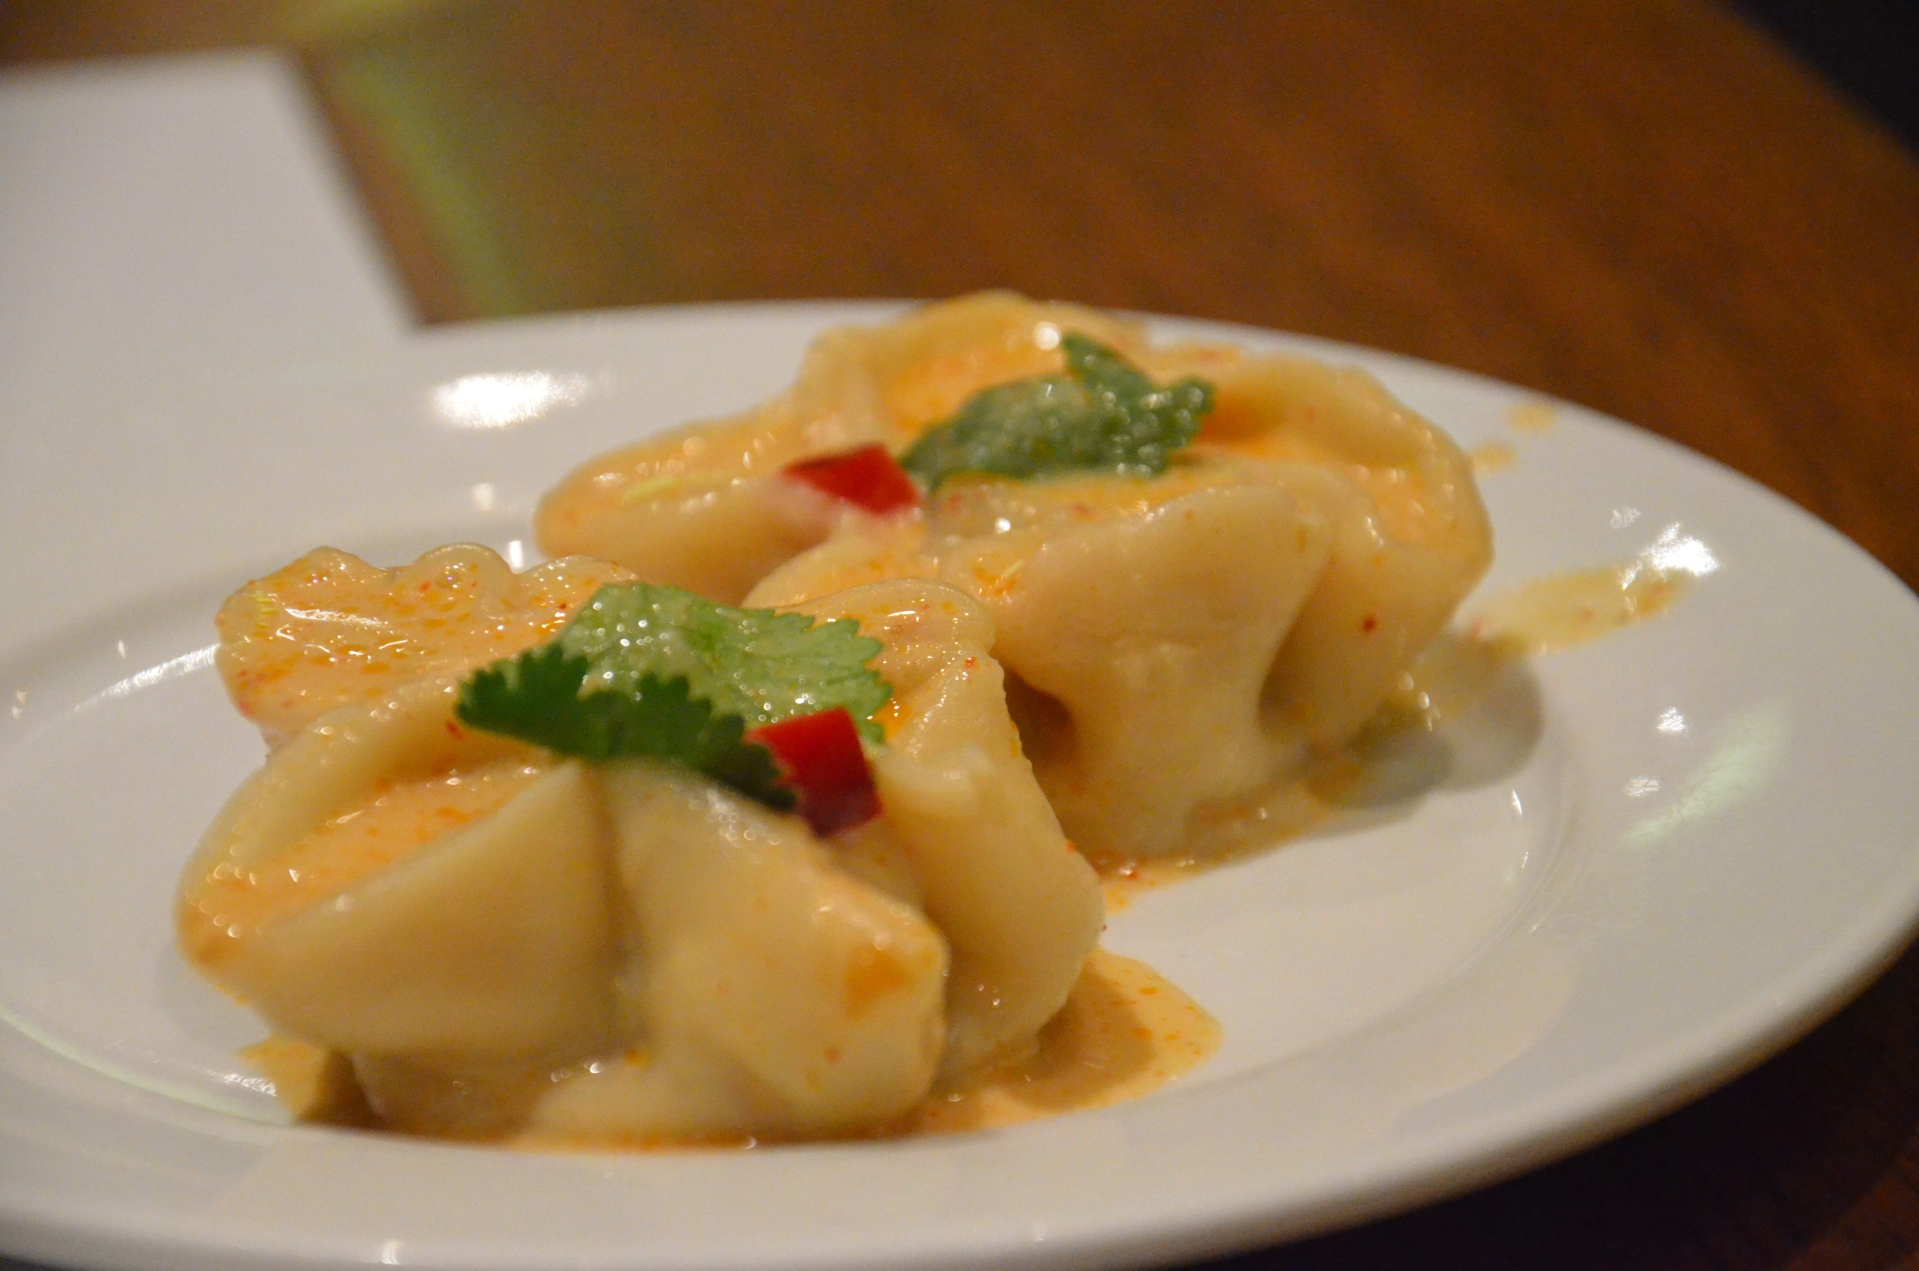 Sea Star - minced prawn, squid and chicken dumplings in a red curry sauce.